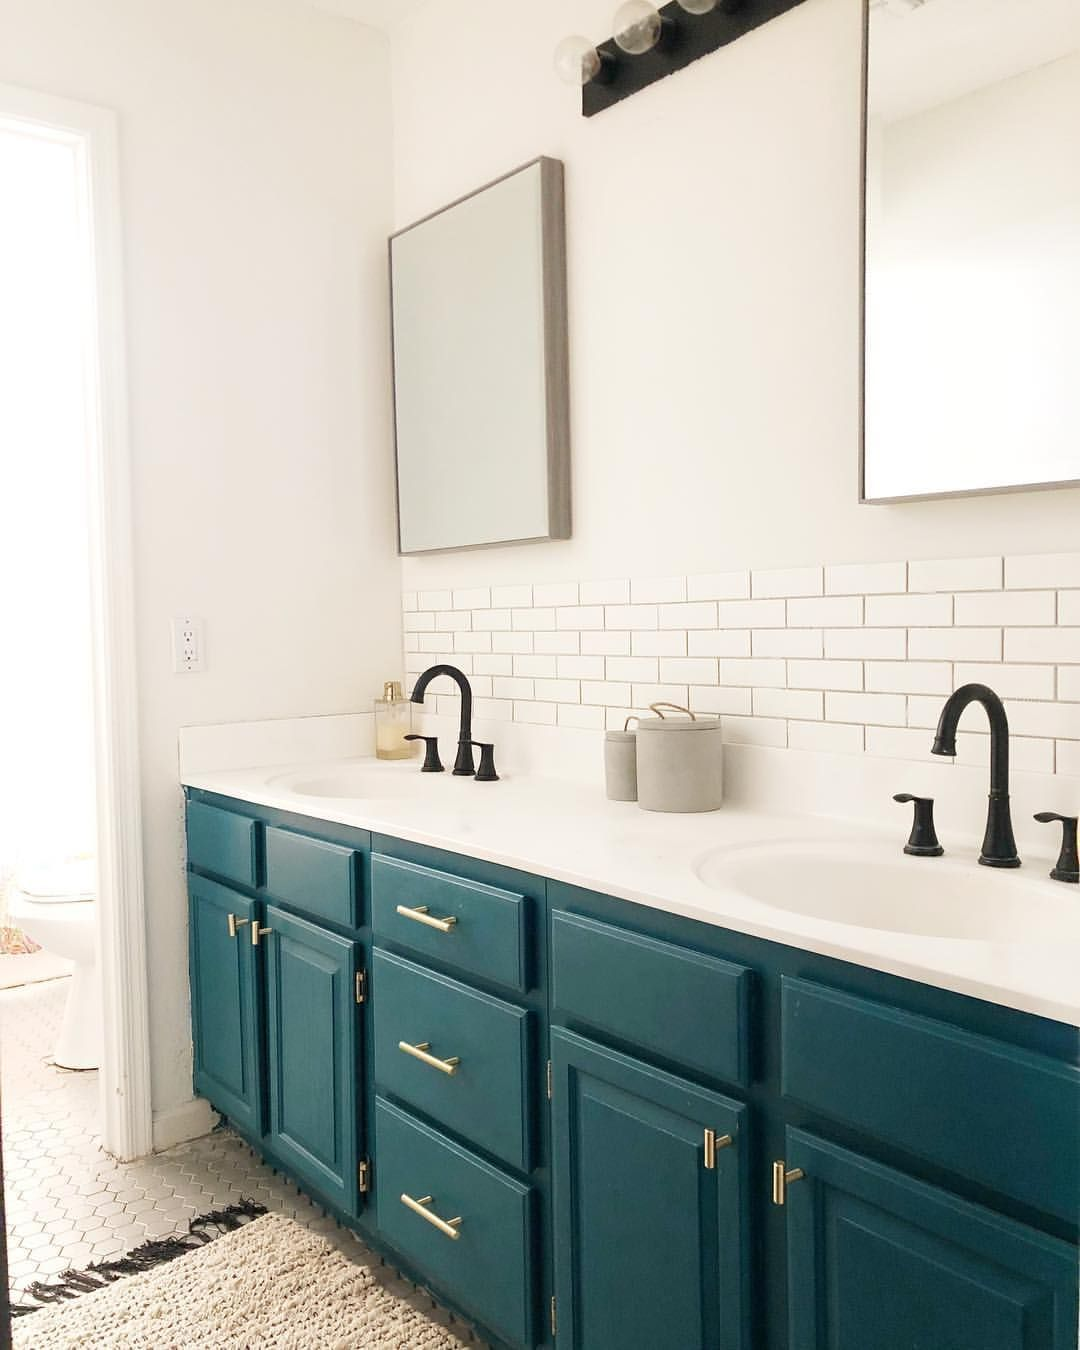 Double Bathroom Vanity Designs Ideas If Room Licenses Two Sink Locations Supply Fantastic C Teal Bathroom Painting Bathroom Cabinets Bathroom Vanity Designs Bathroom vanity stores near me